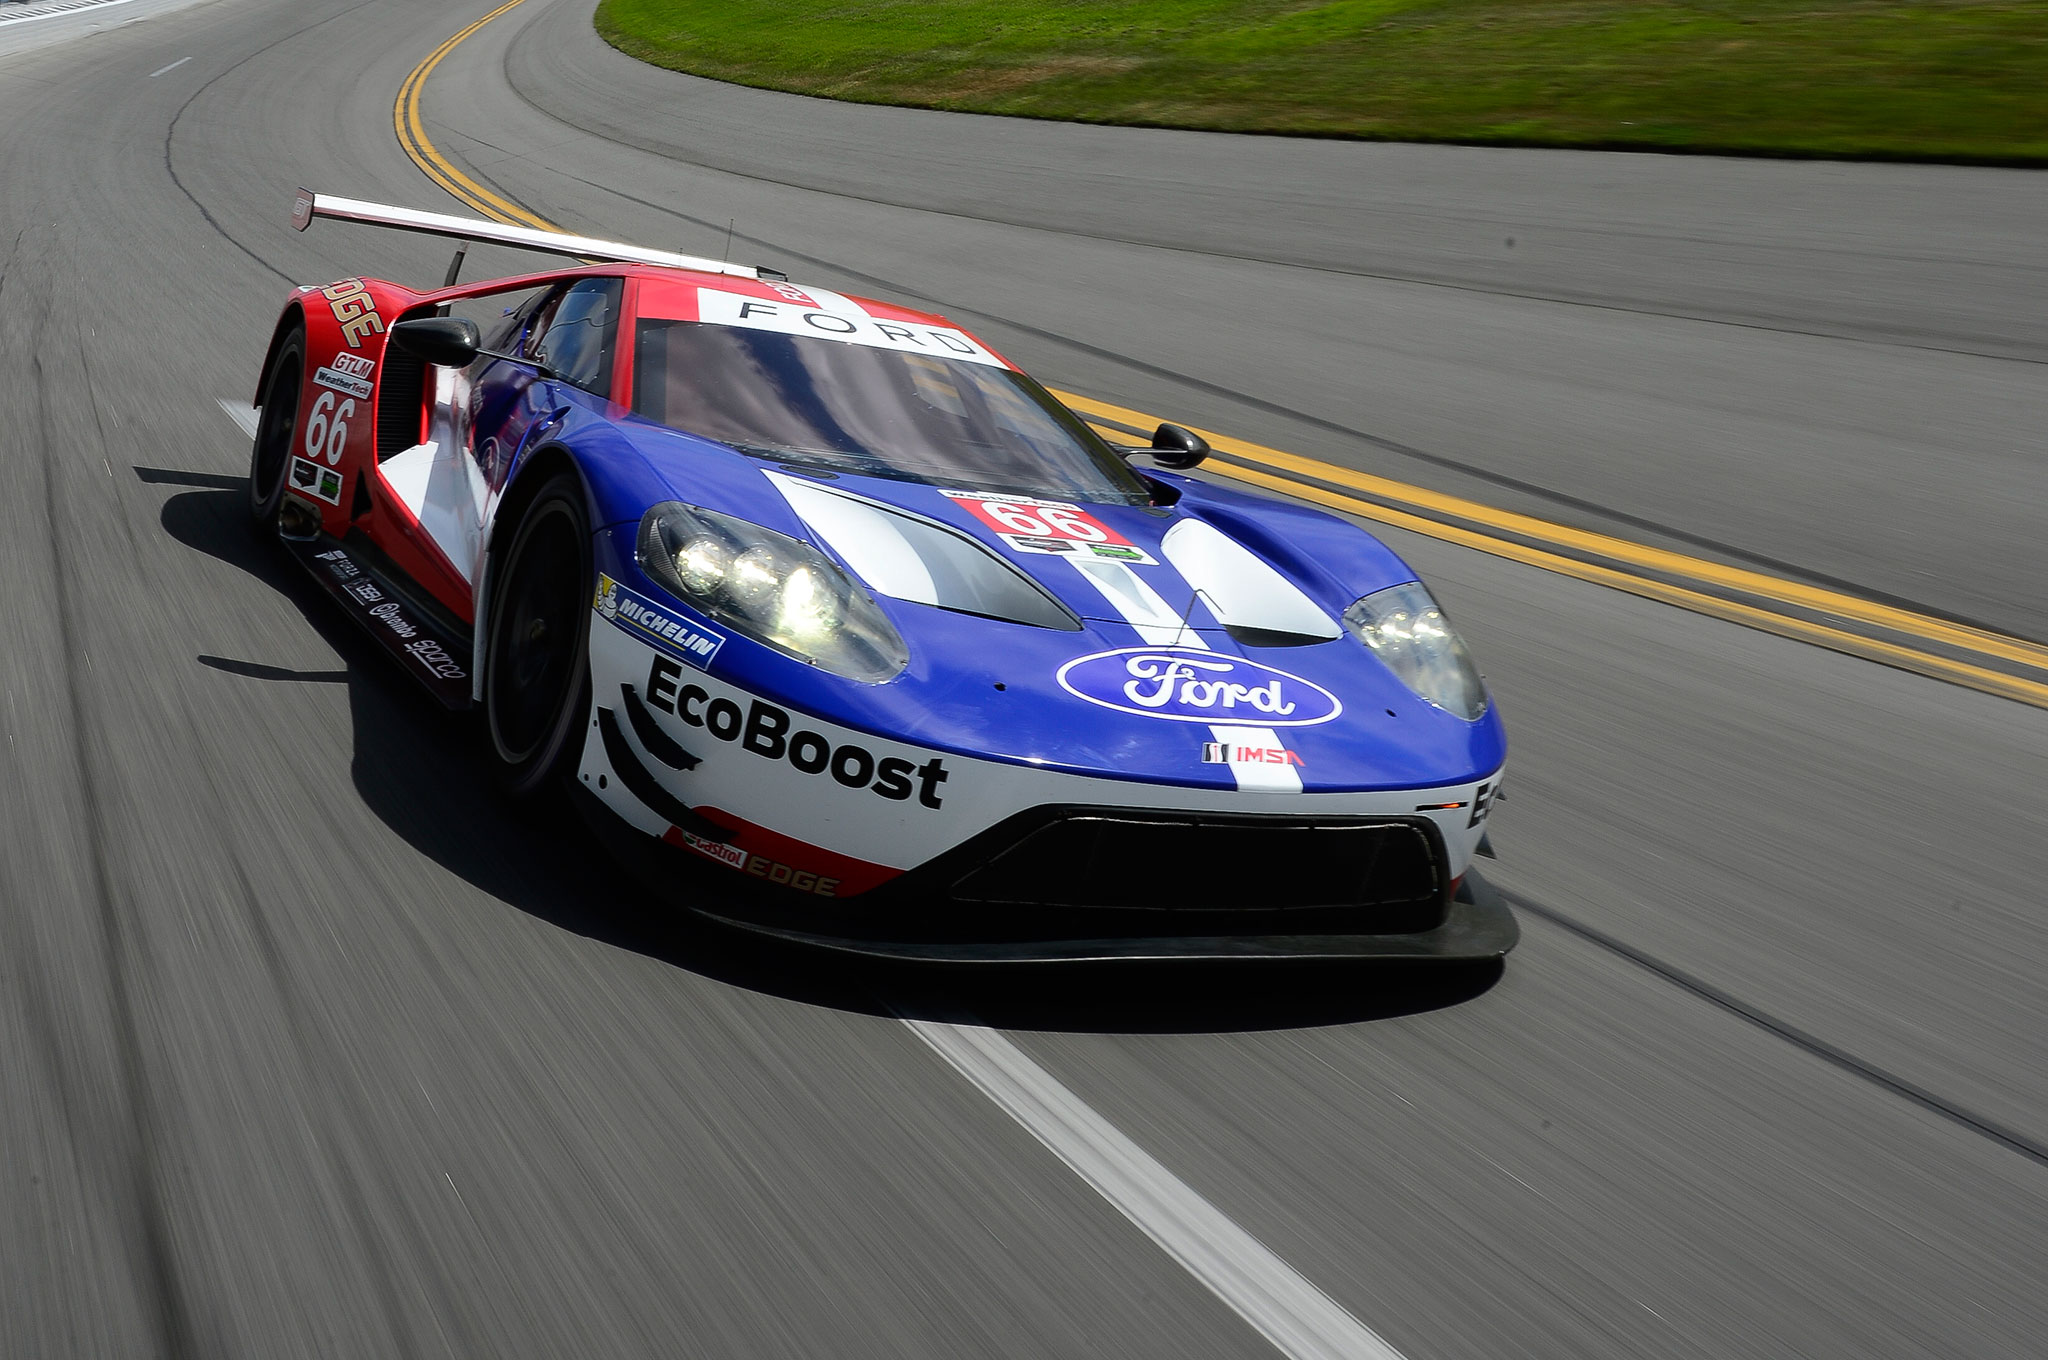 Ford Mustang Race Car Wallpaper Chasing History The New Ford Gt Goes Racing